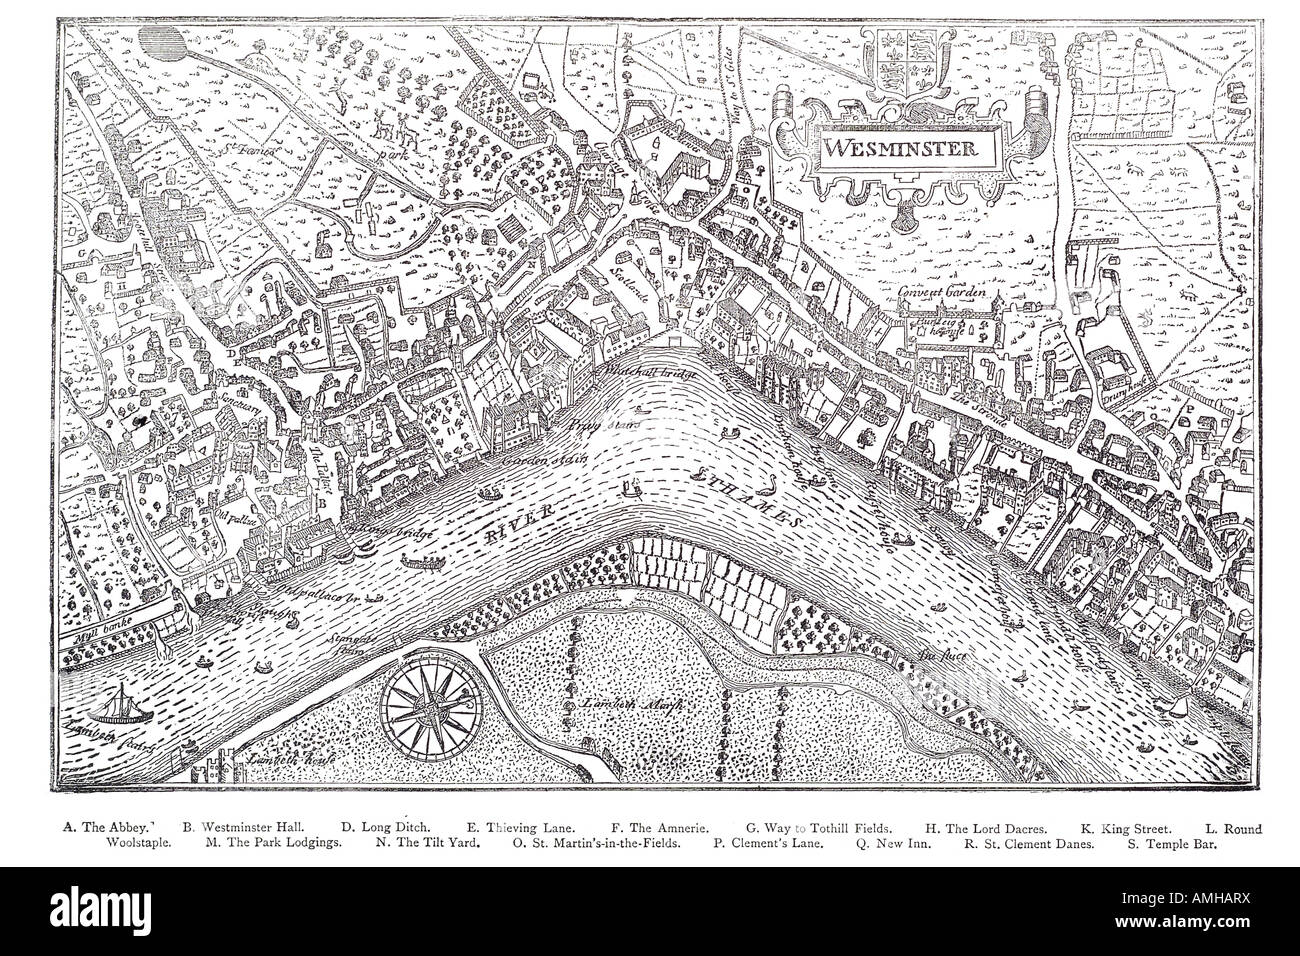 1593 plan Westminster map cartographic river Thames London Greater capital city England English Britain British - Stock Image